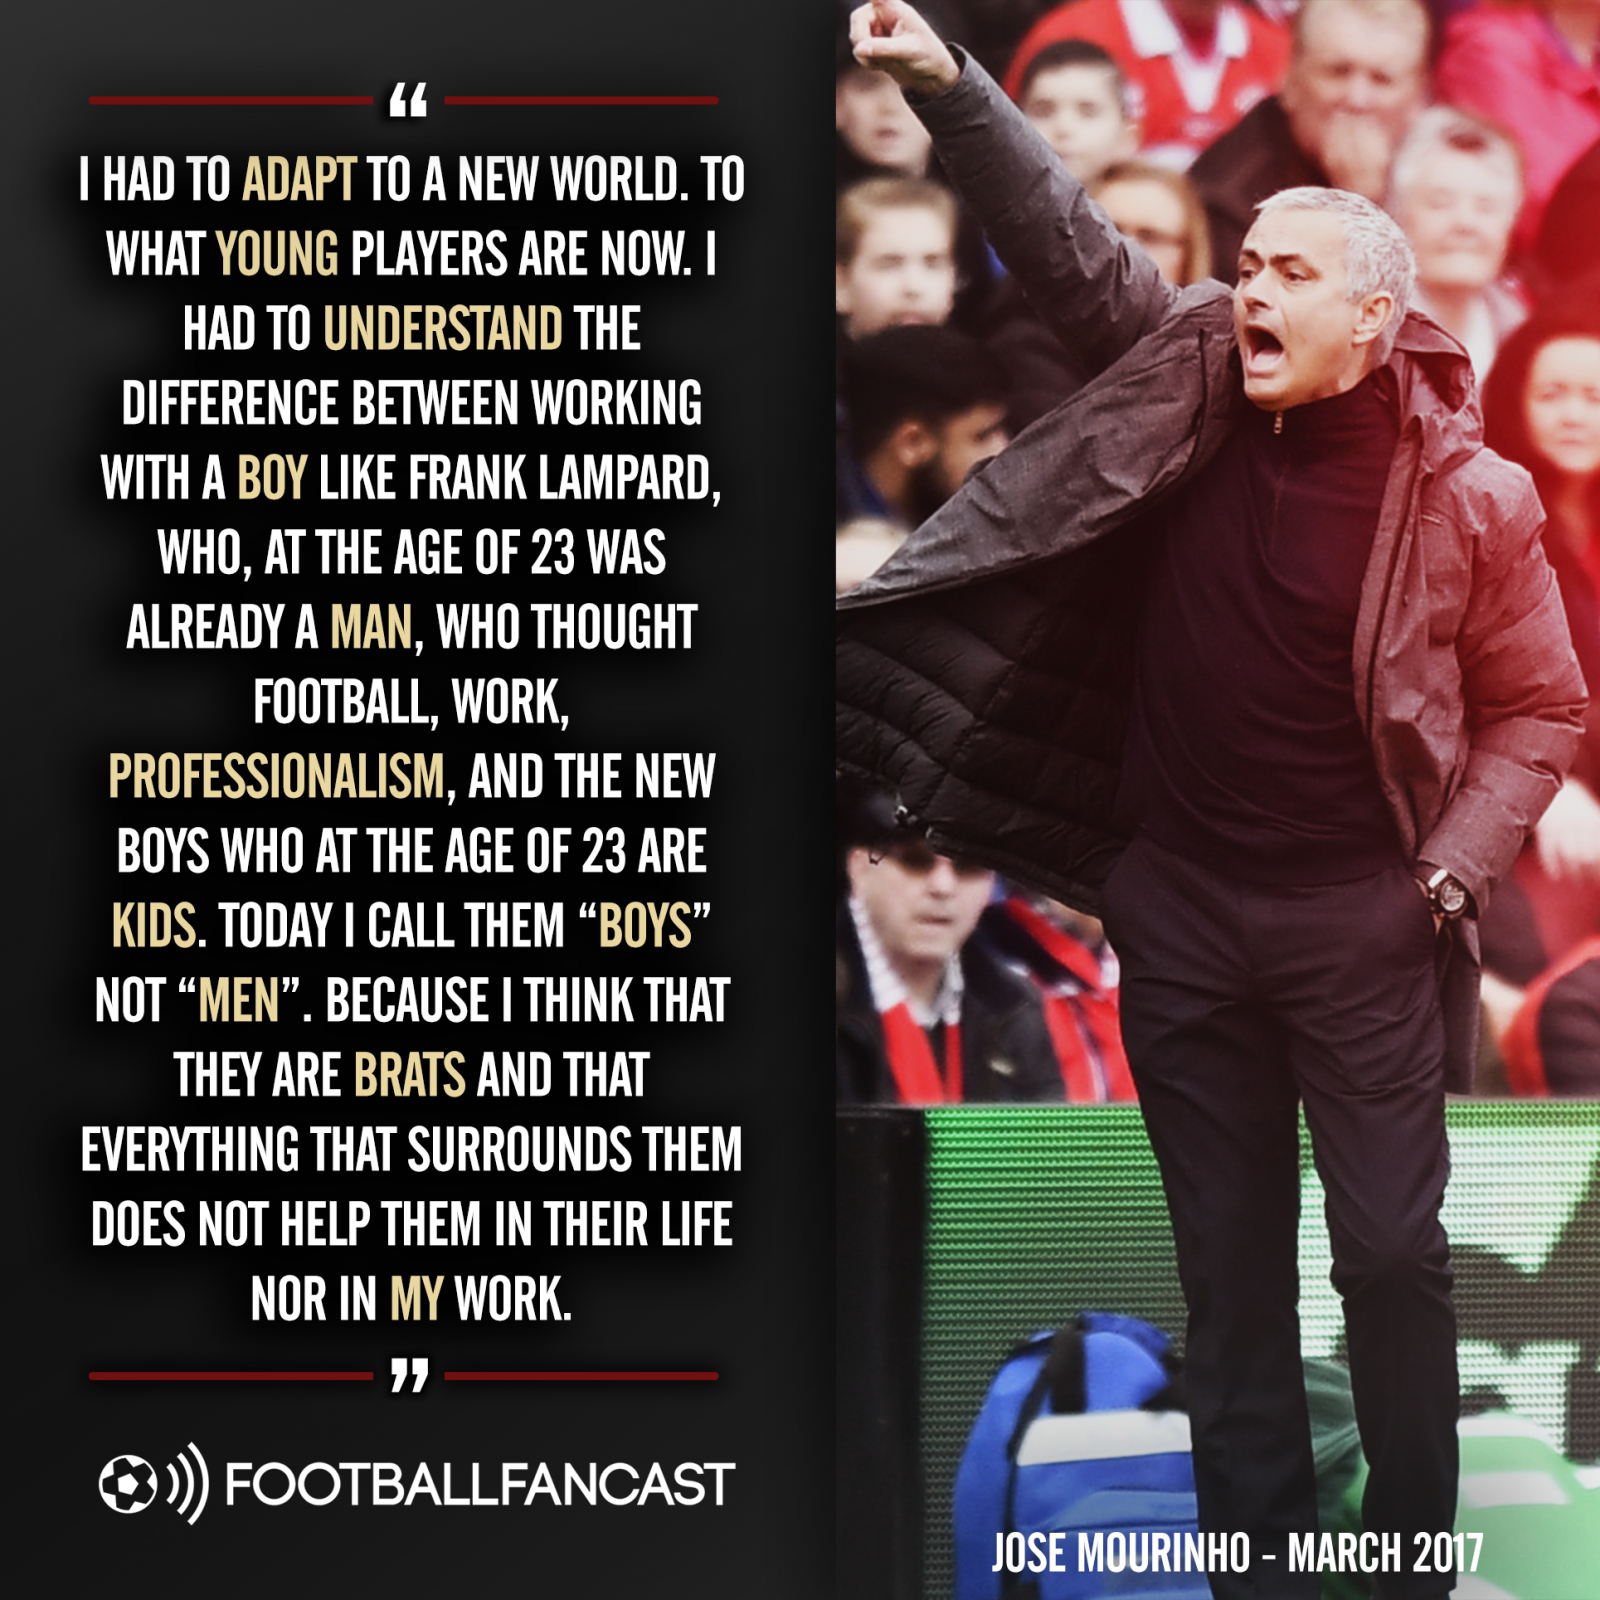 Jose Mourinho's brats quote from March 2017